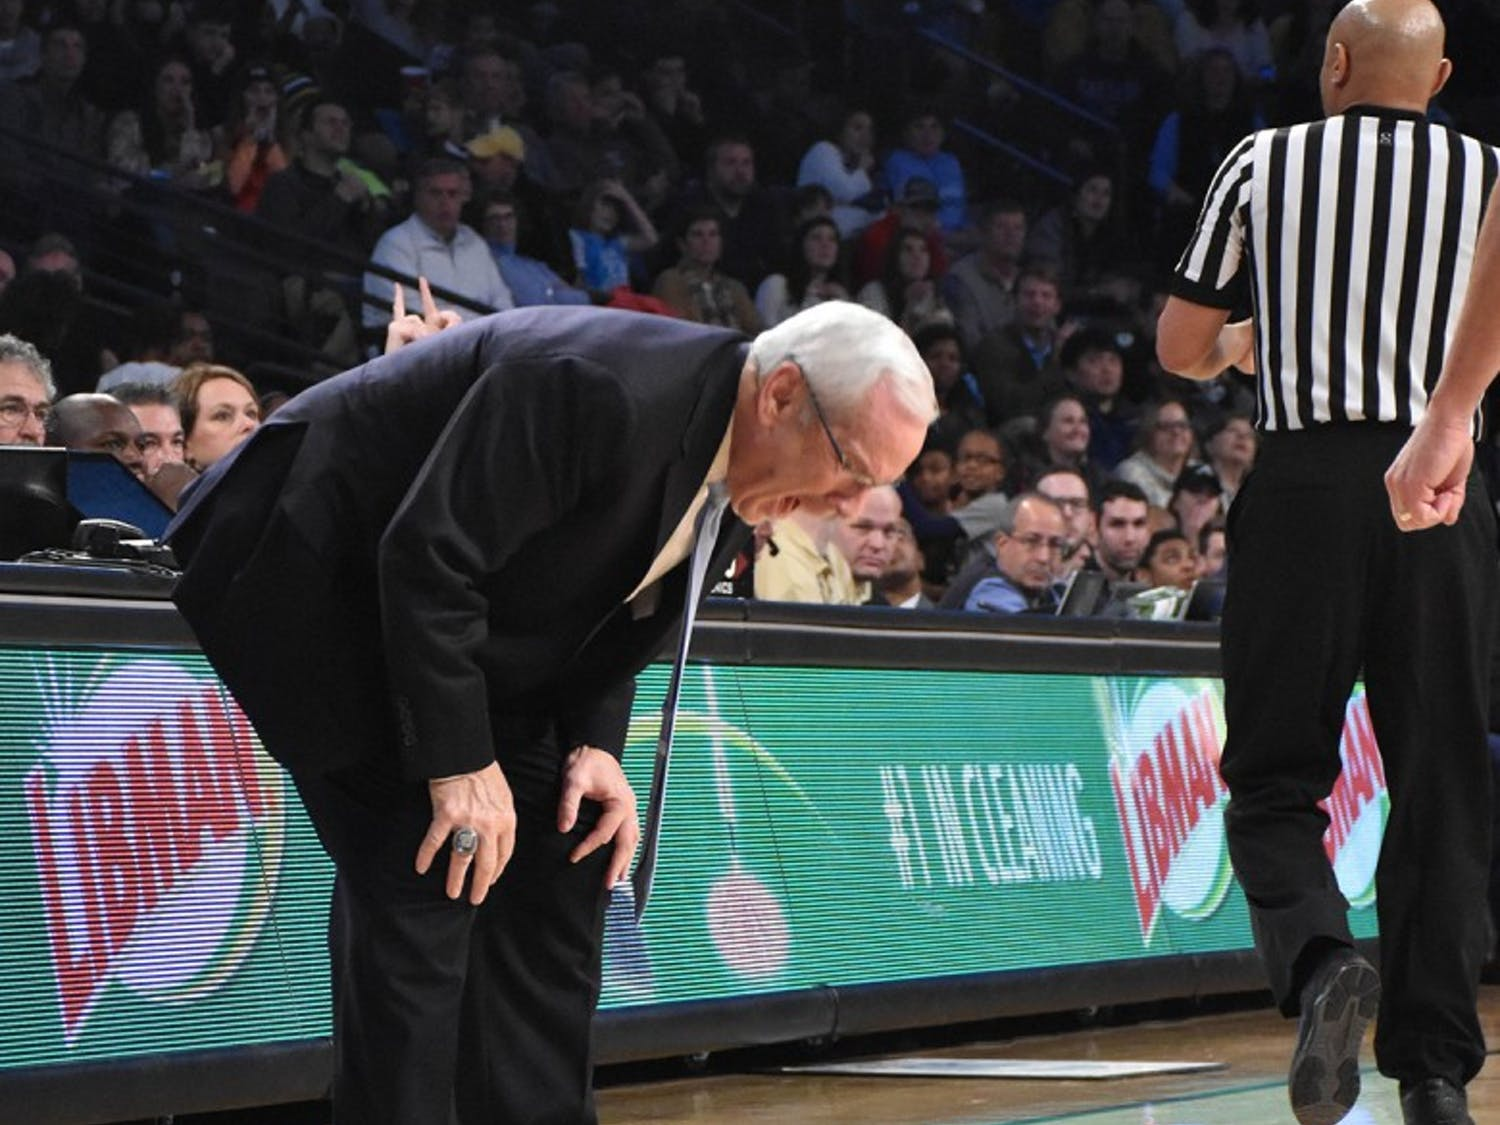 UNC head coach Roy Williams becomes upset during Saturday's game against Georgia Tech.